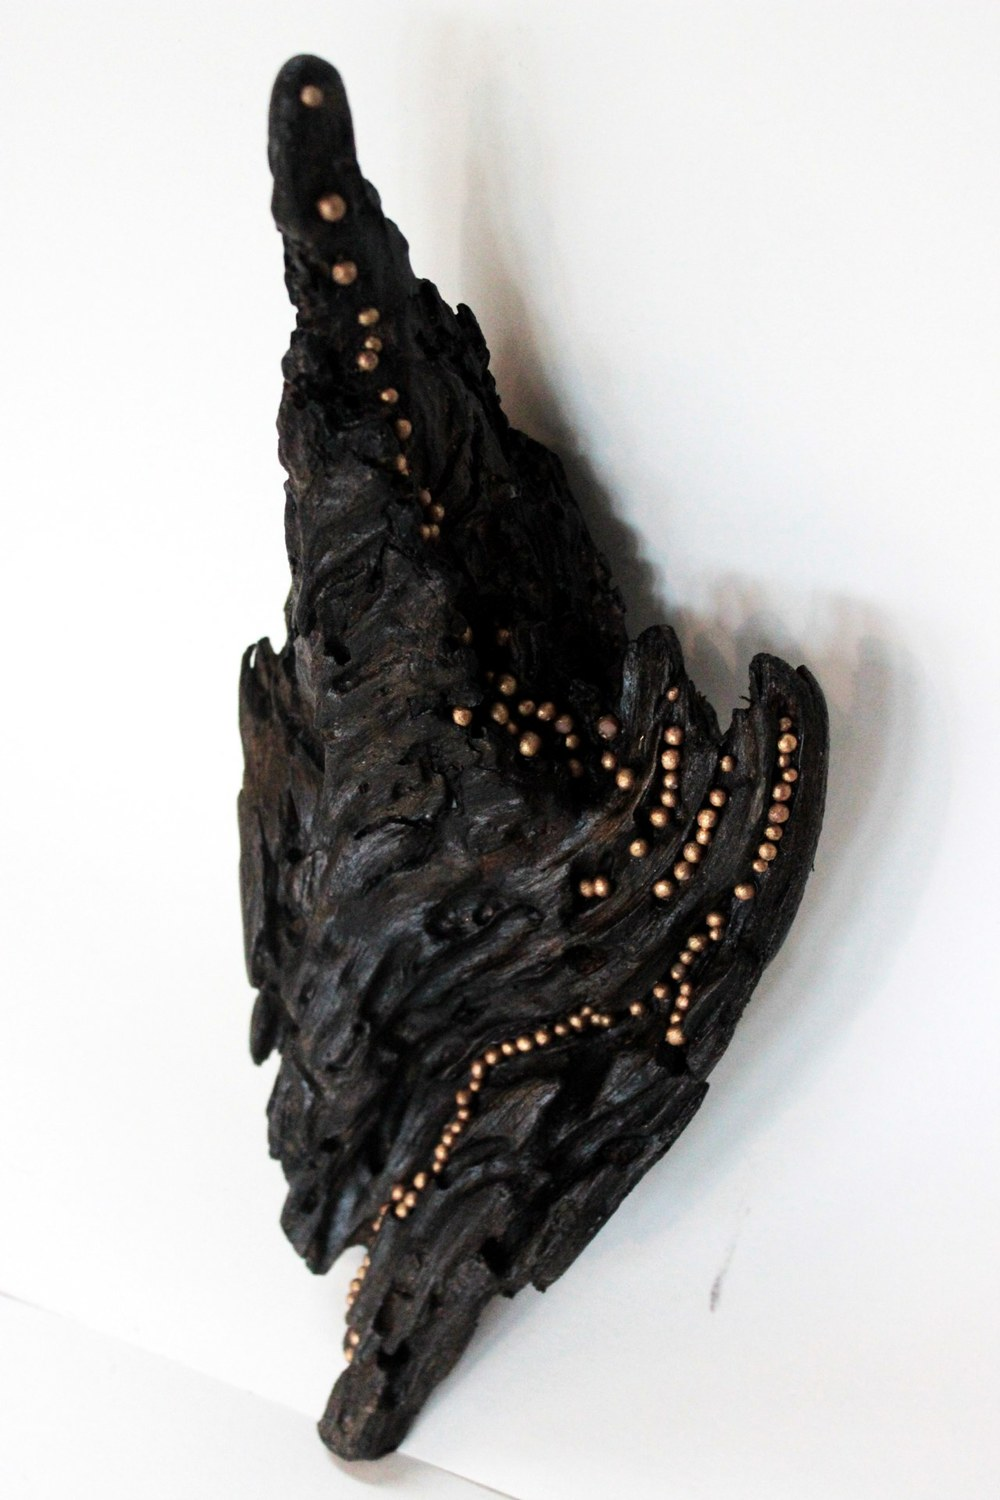 A Luminous Stream of Thought, 2014 gold leaf, polymer clay, acrylic on driftwood 11 x 5 x 3 inches